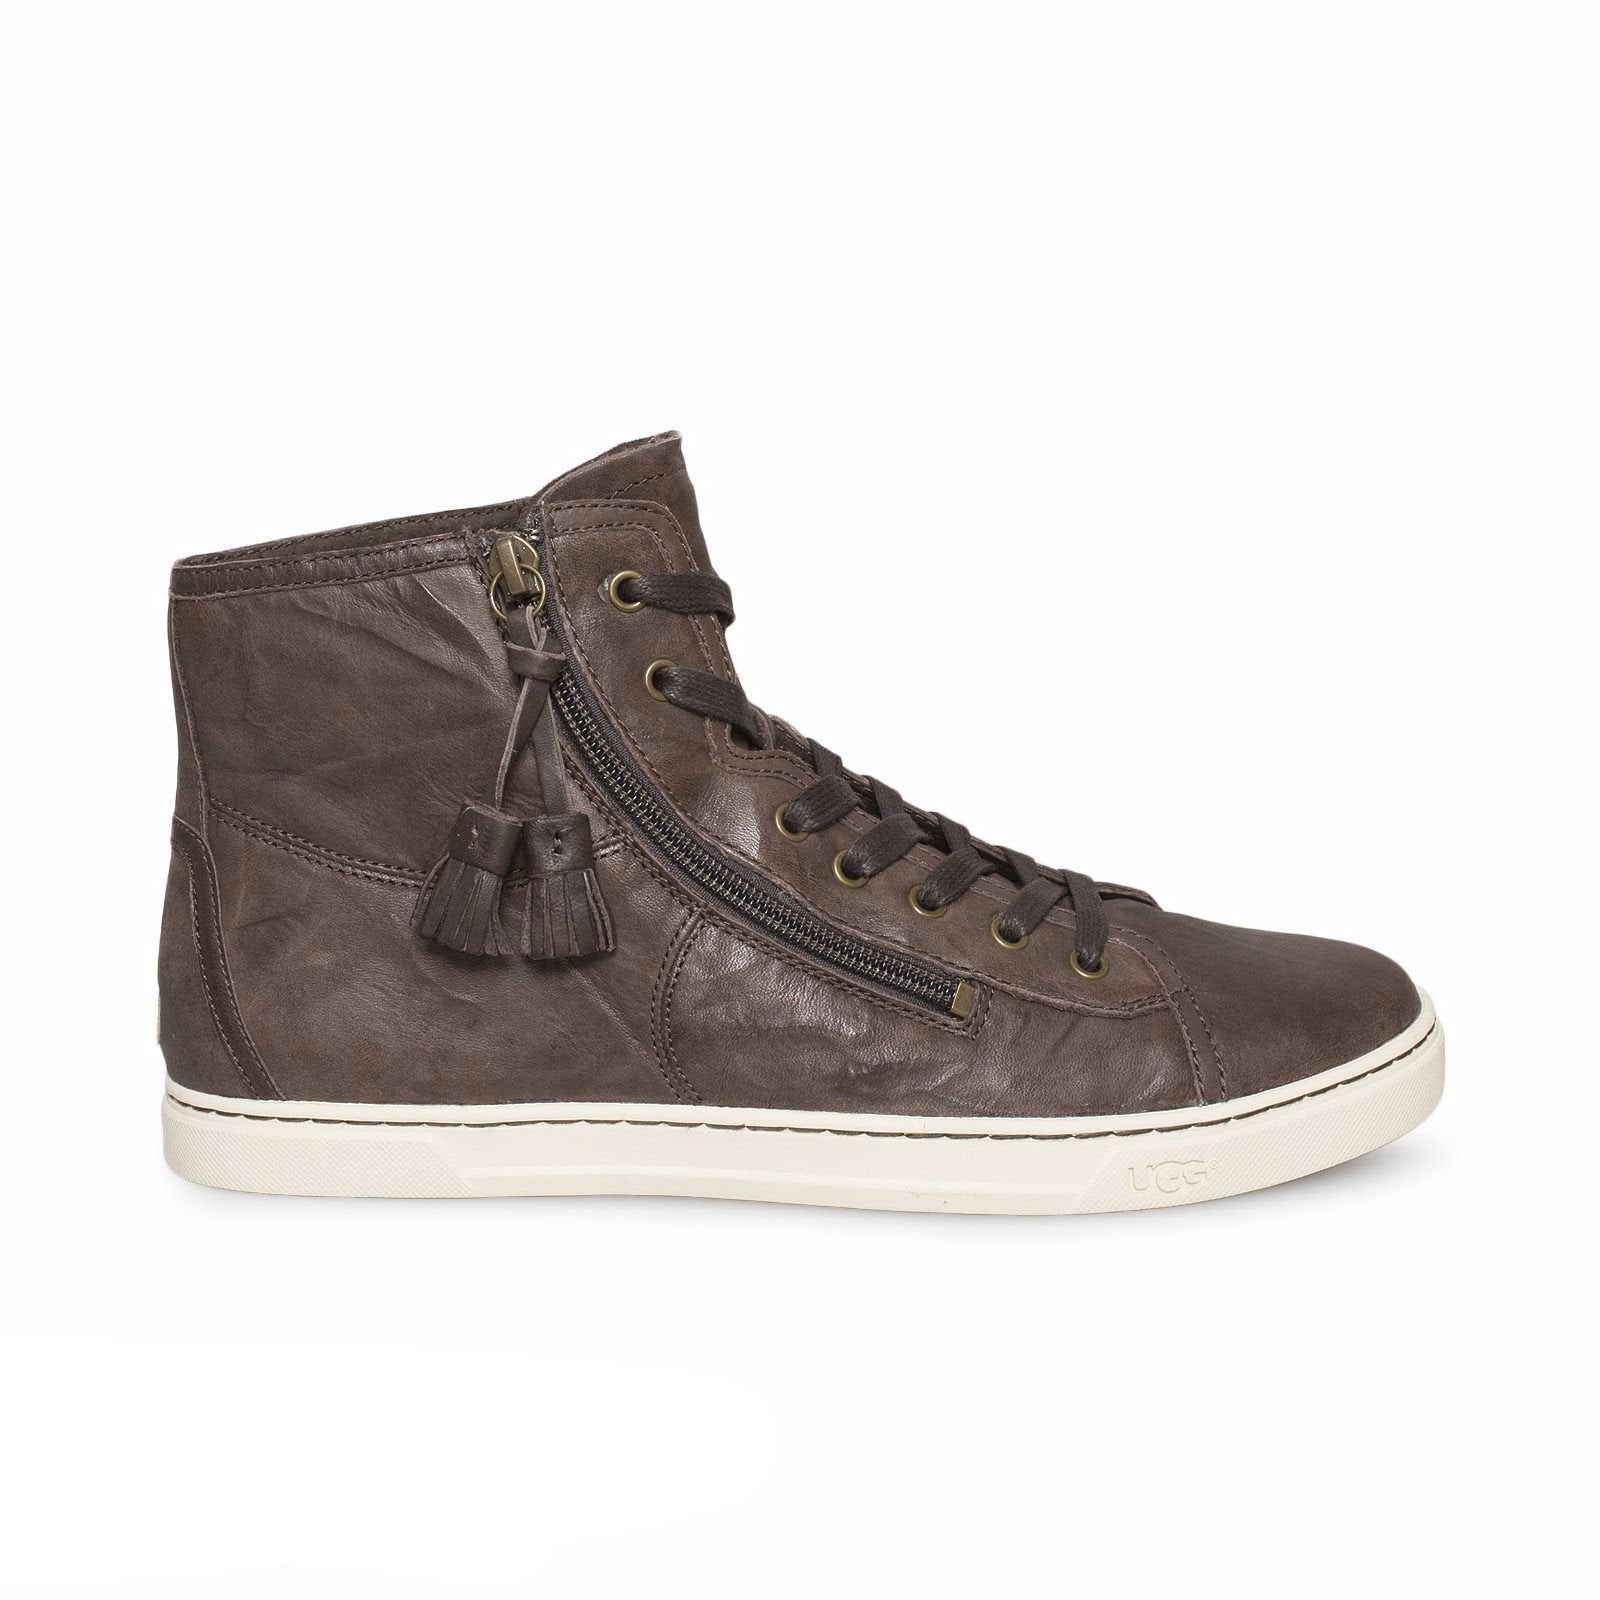 UGG Blaney Chocolate Boots